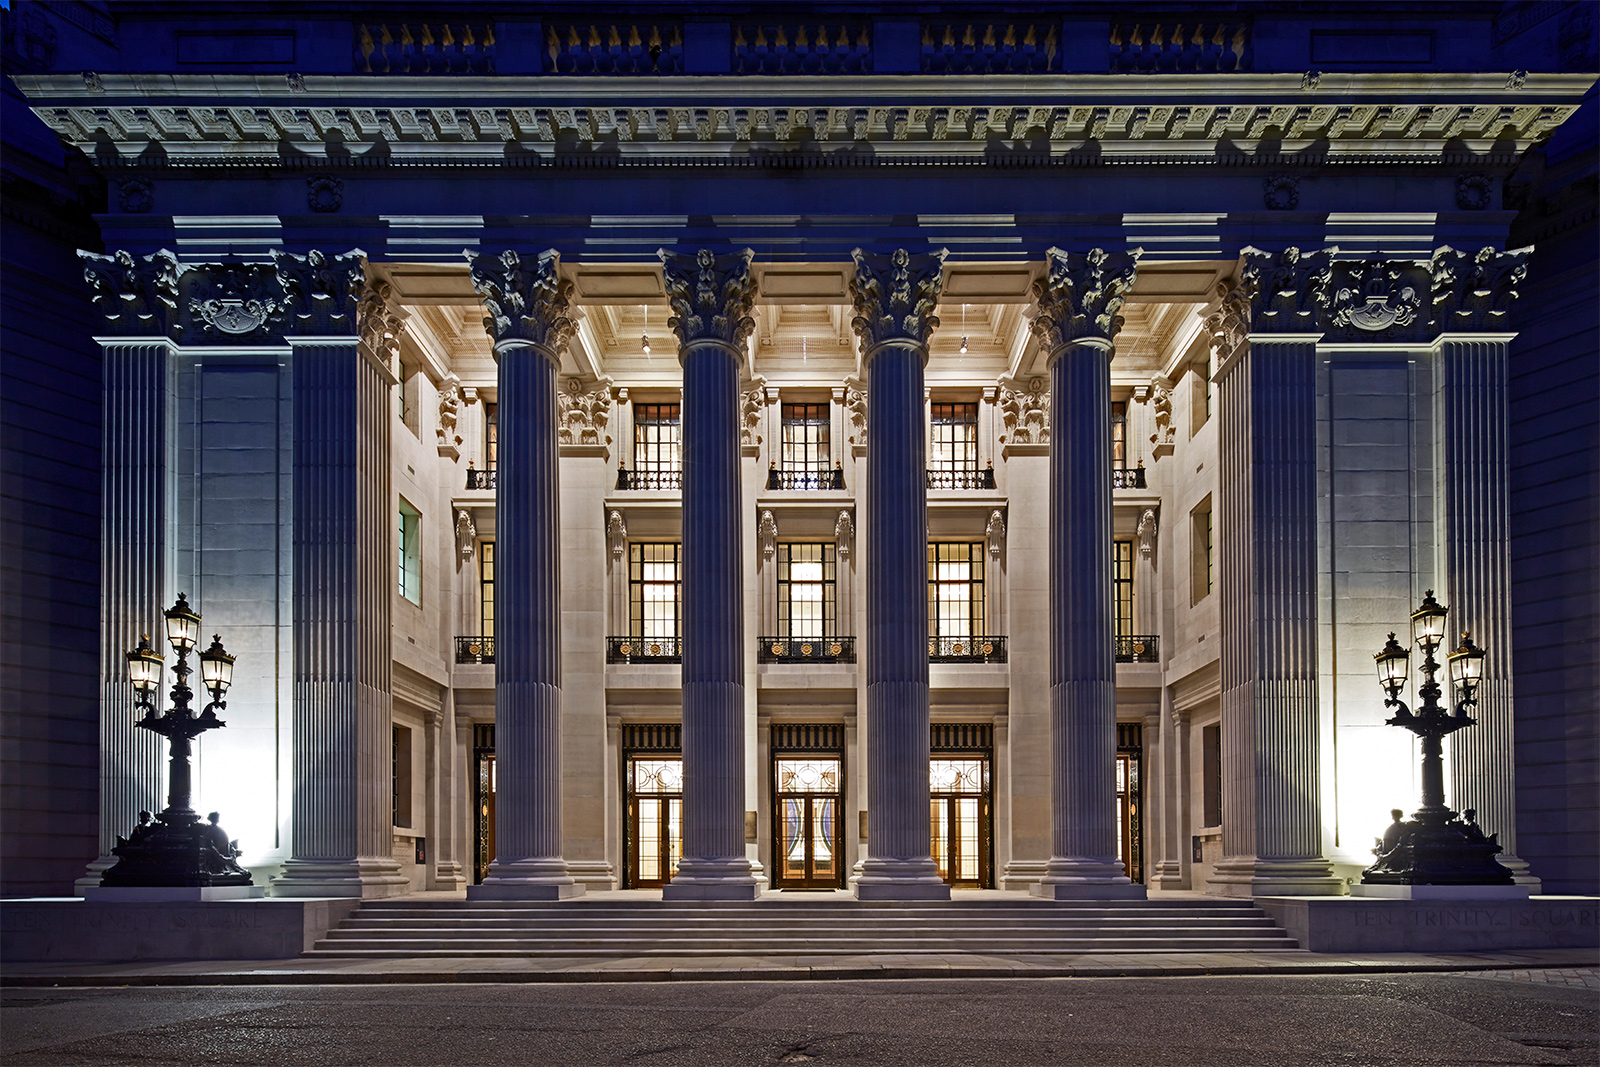 Hotels opening in 2017: Four Seasons London at Ten Trinity Square